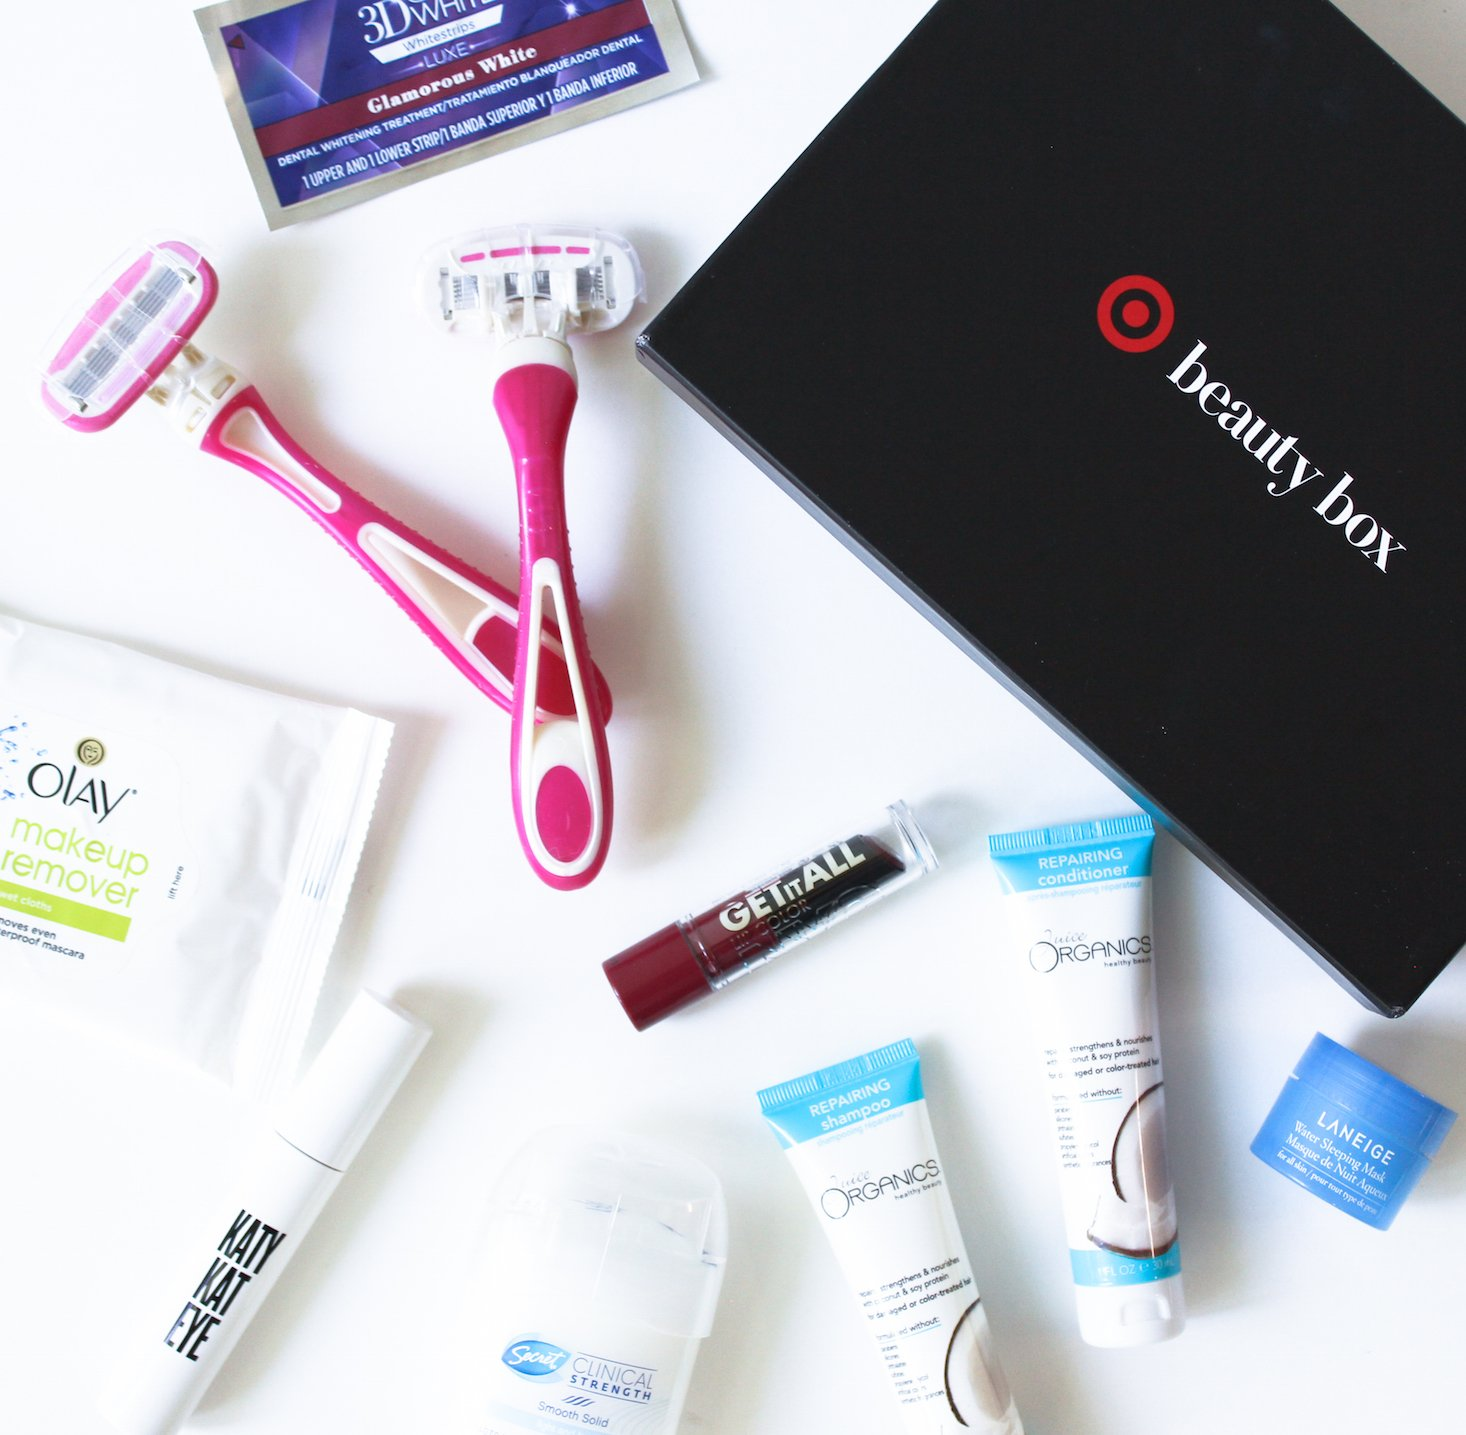 target-beauty-box-august-2016-items